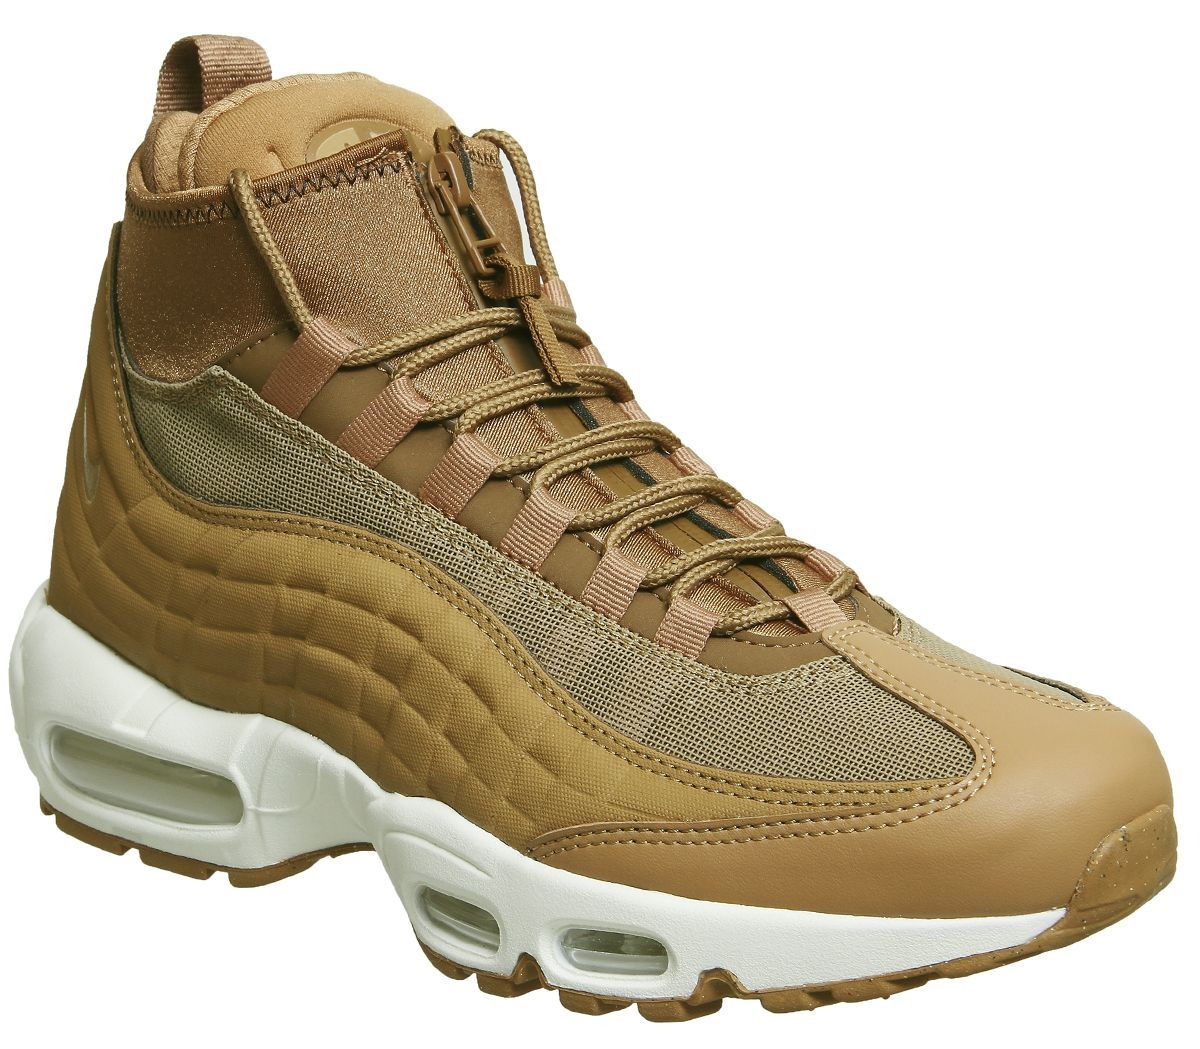 best website fc824 bc870 Air Max 95 Sneakerboots